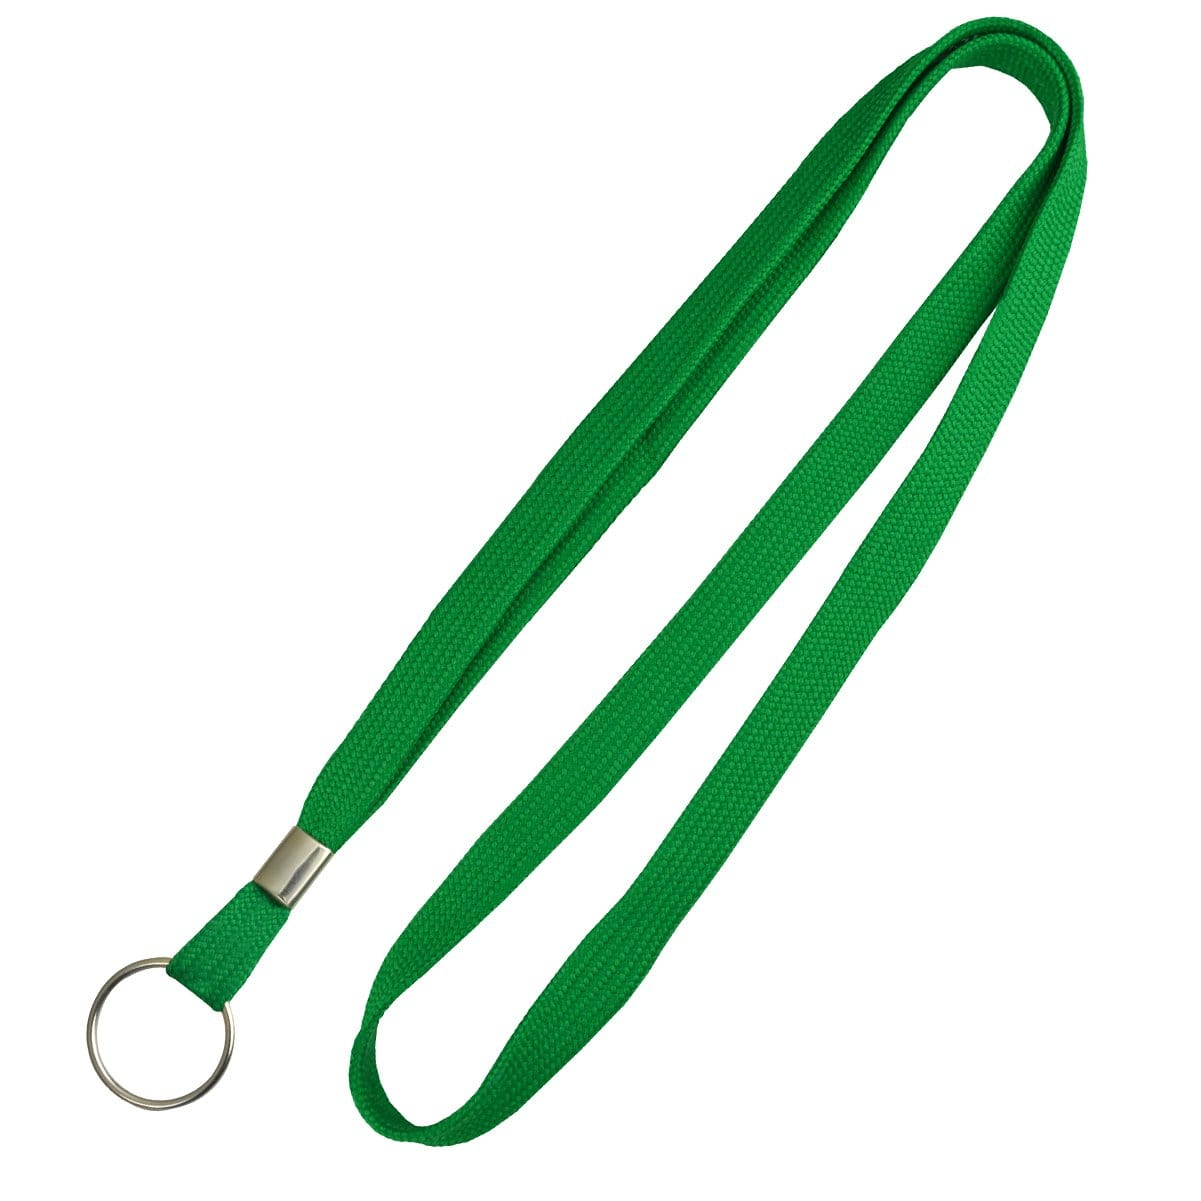 Flat Braid Woven Lanyard With Nickel-Plated Steel Split Ring 2135-365X